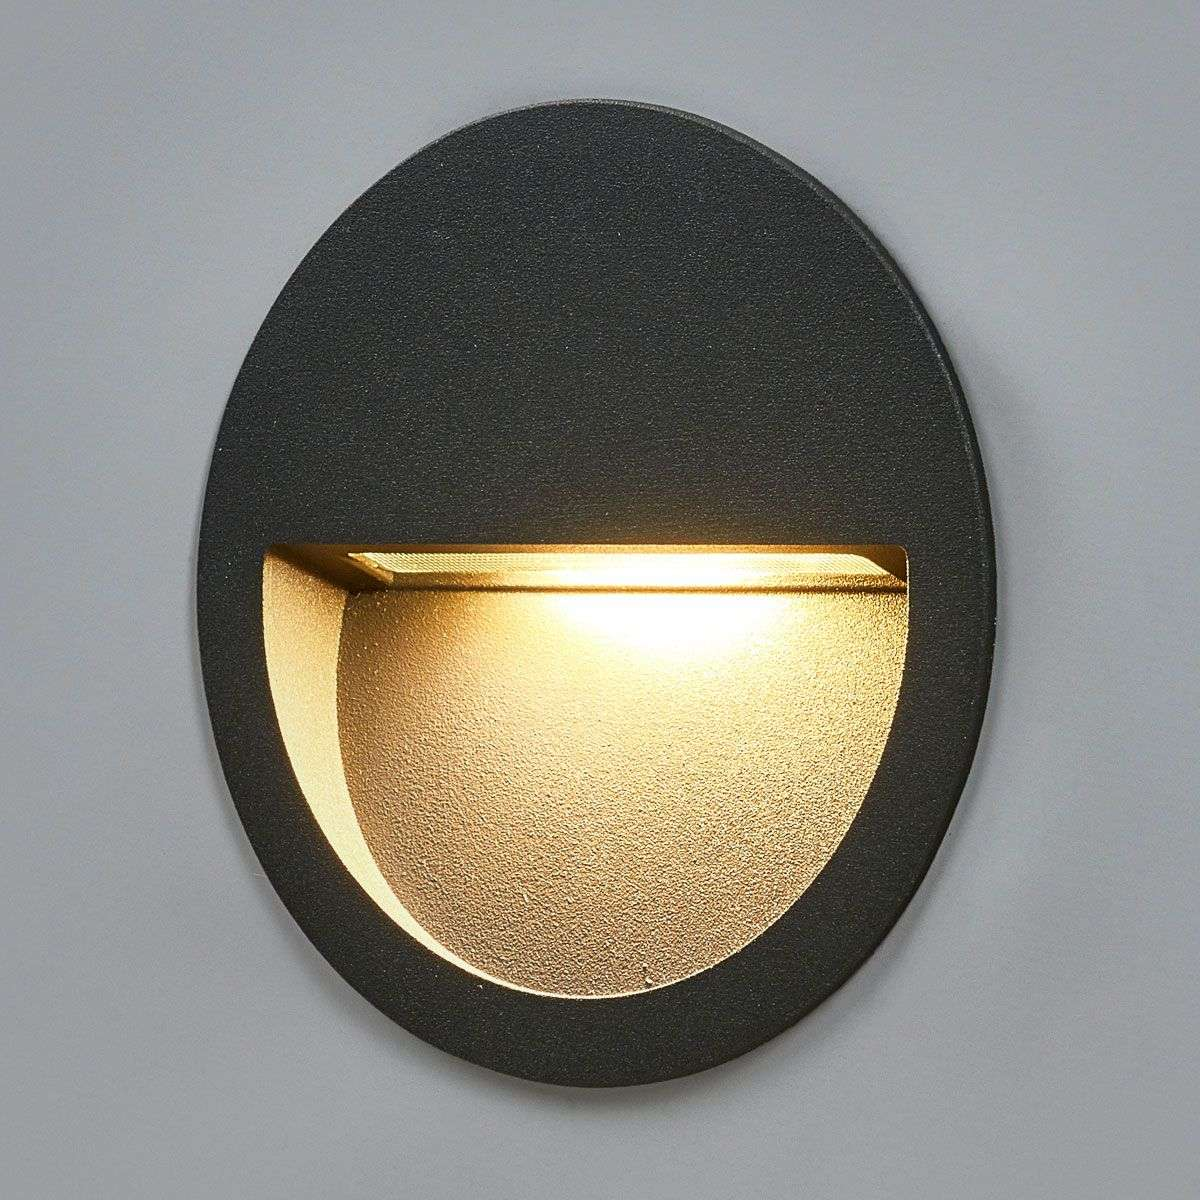 Round led recessed wall light loya lights round led recessed wall light loya 9969037 32 aloadofball Choice Image